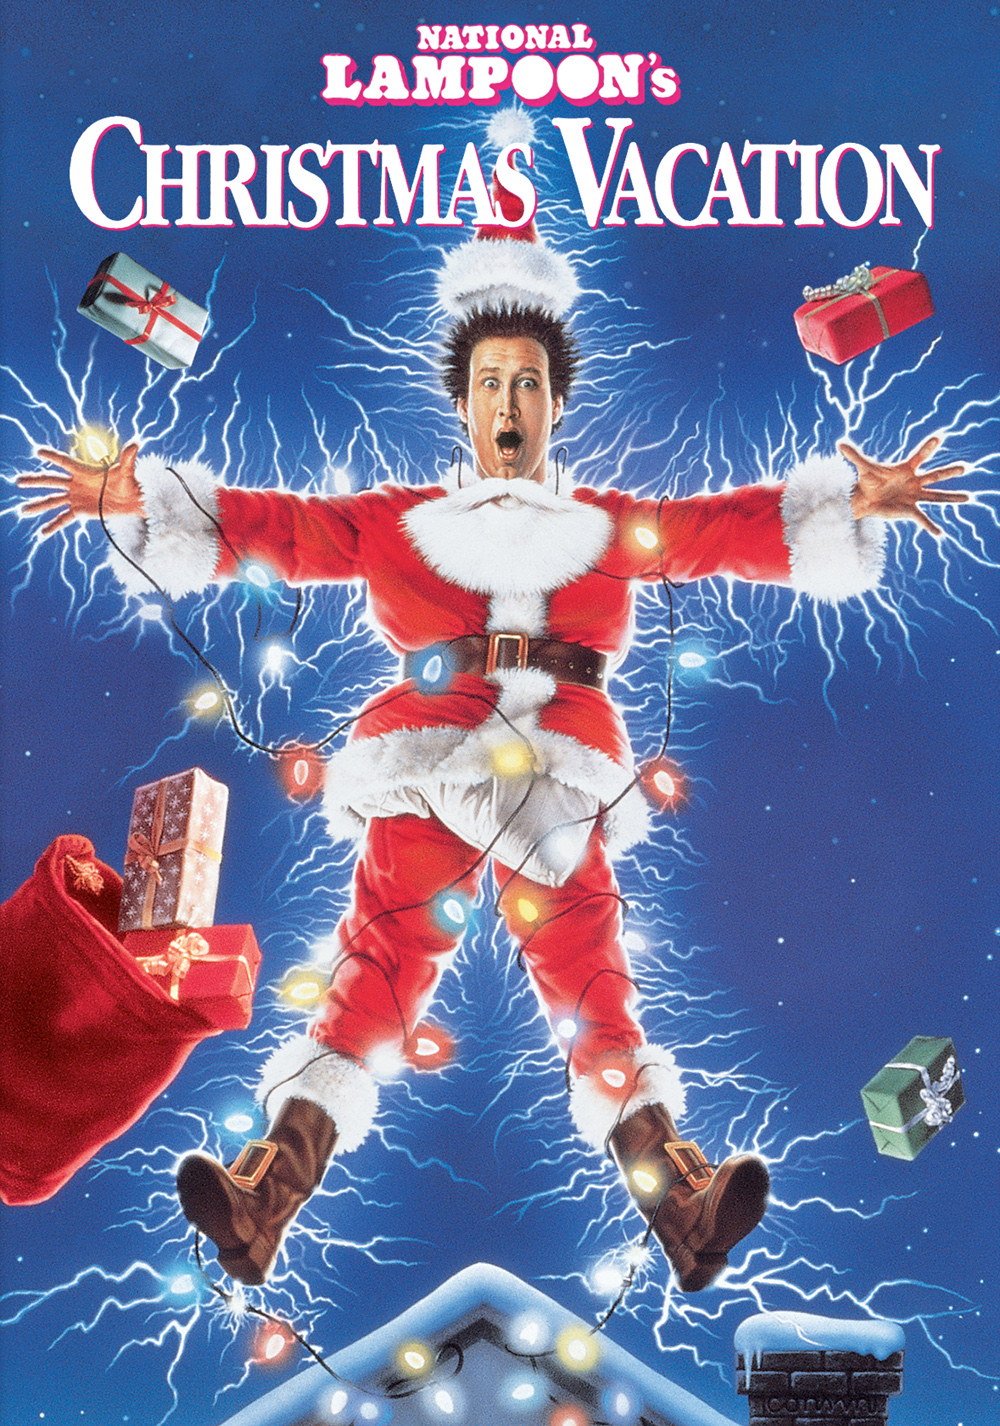 Flix Movie Theater >> National Lampoon's Christmas Vacation | Moviepedia | FANDOM powered by Wikia